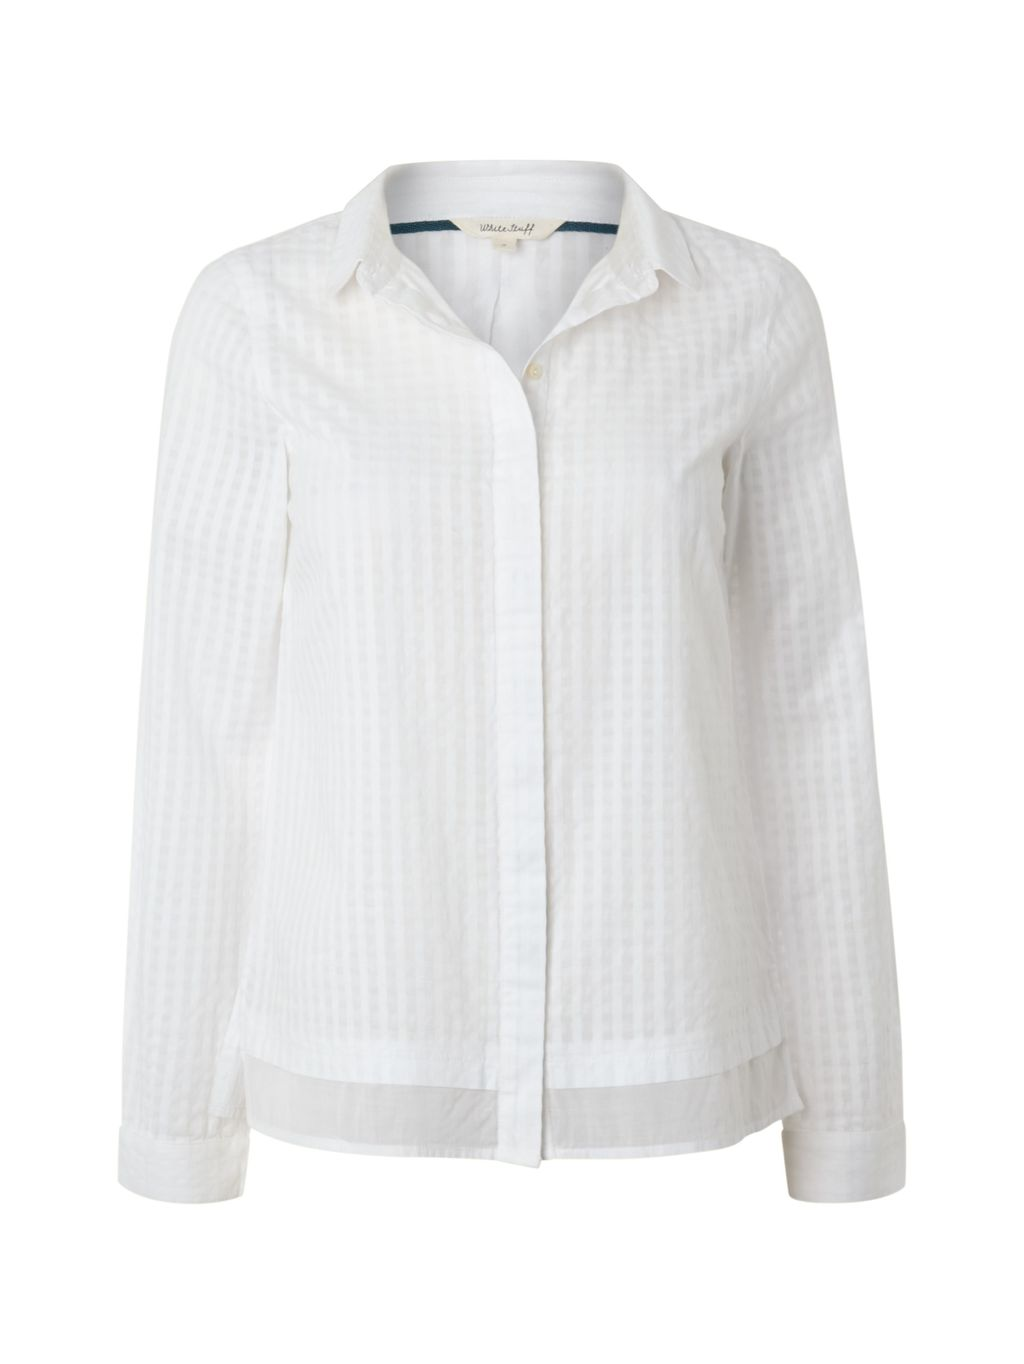 Simplicity Shirt, White - neckline: shirt collar/peter pan/zip with opening; pattern: plain; style: shirt; predominant colour: white; occasions: work; length: standard; fibres: cotton - 100%; fit: straight cut; sleeve length: long sleeve; sleeve style: standard; texture group: cotton feel fabrics; pattern type: fabric; season: s/s 2015; wardrobe: basic